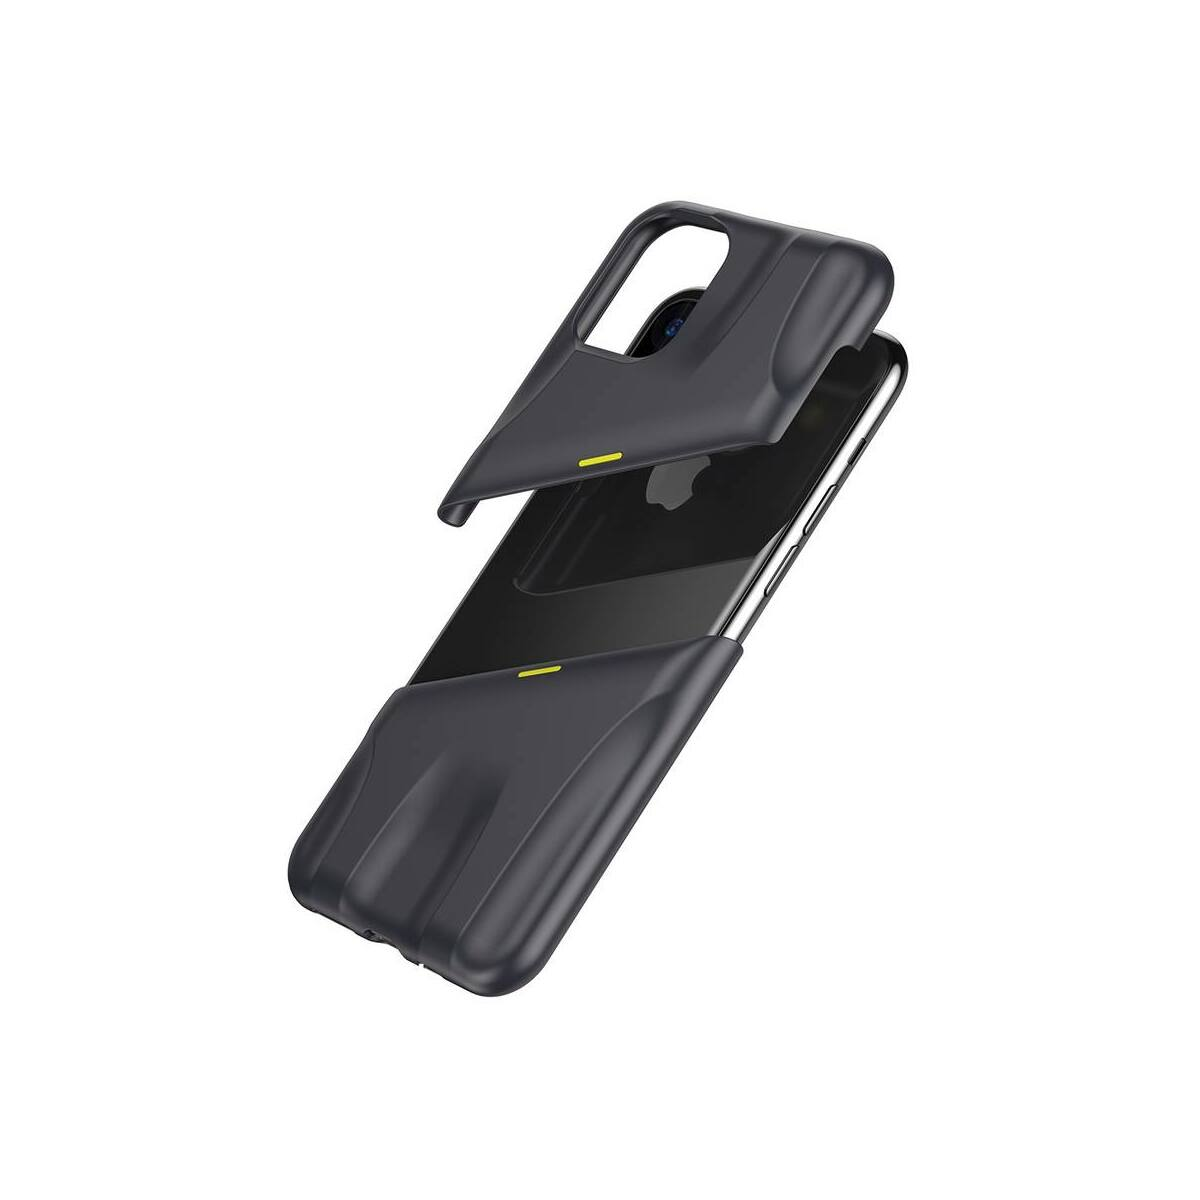 Baseus iPhone 11 tok, Lets go Airflow Cooling, szürke/citrom (WIAPIPH61S-GMGY)